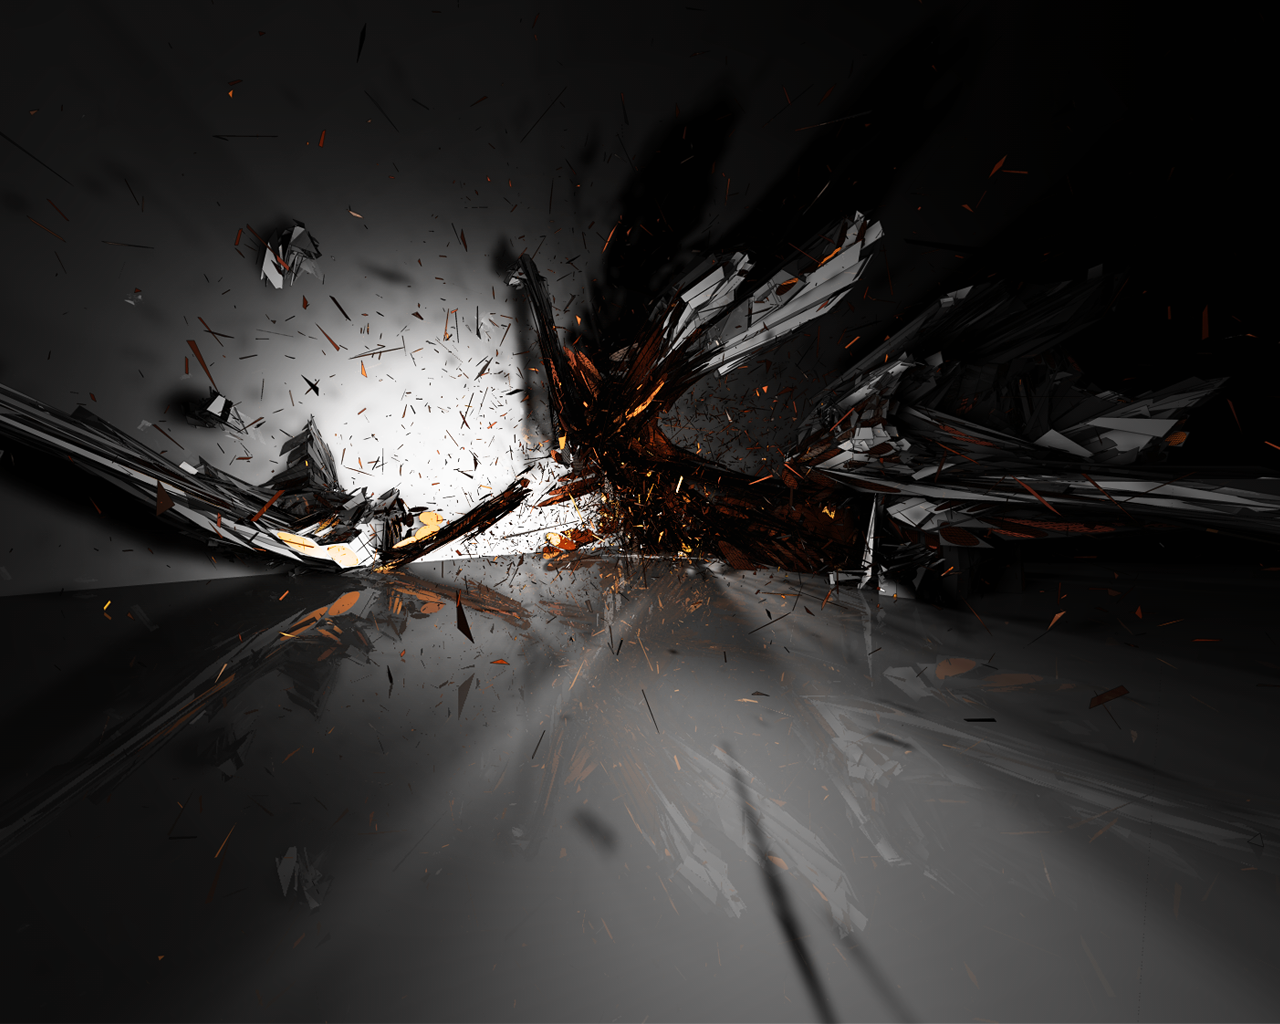 HD Wallpapers abstract hd wallpaper 1280x1024